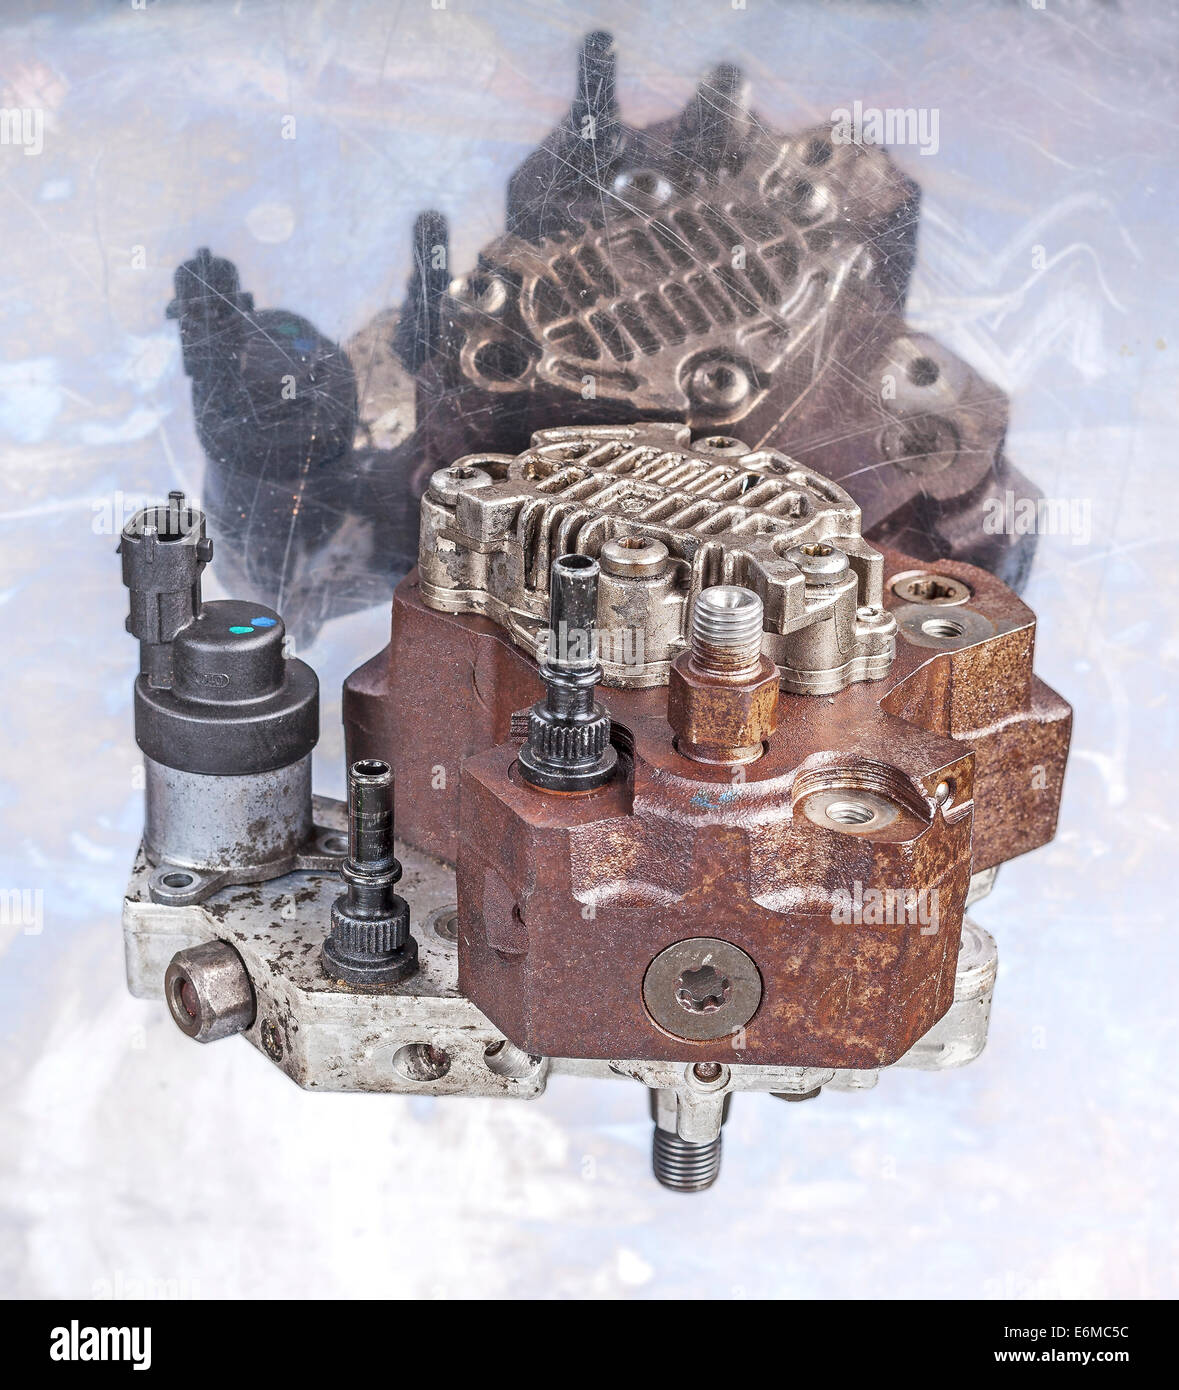 Fuel Injection Pump - Stock Image